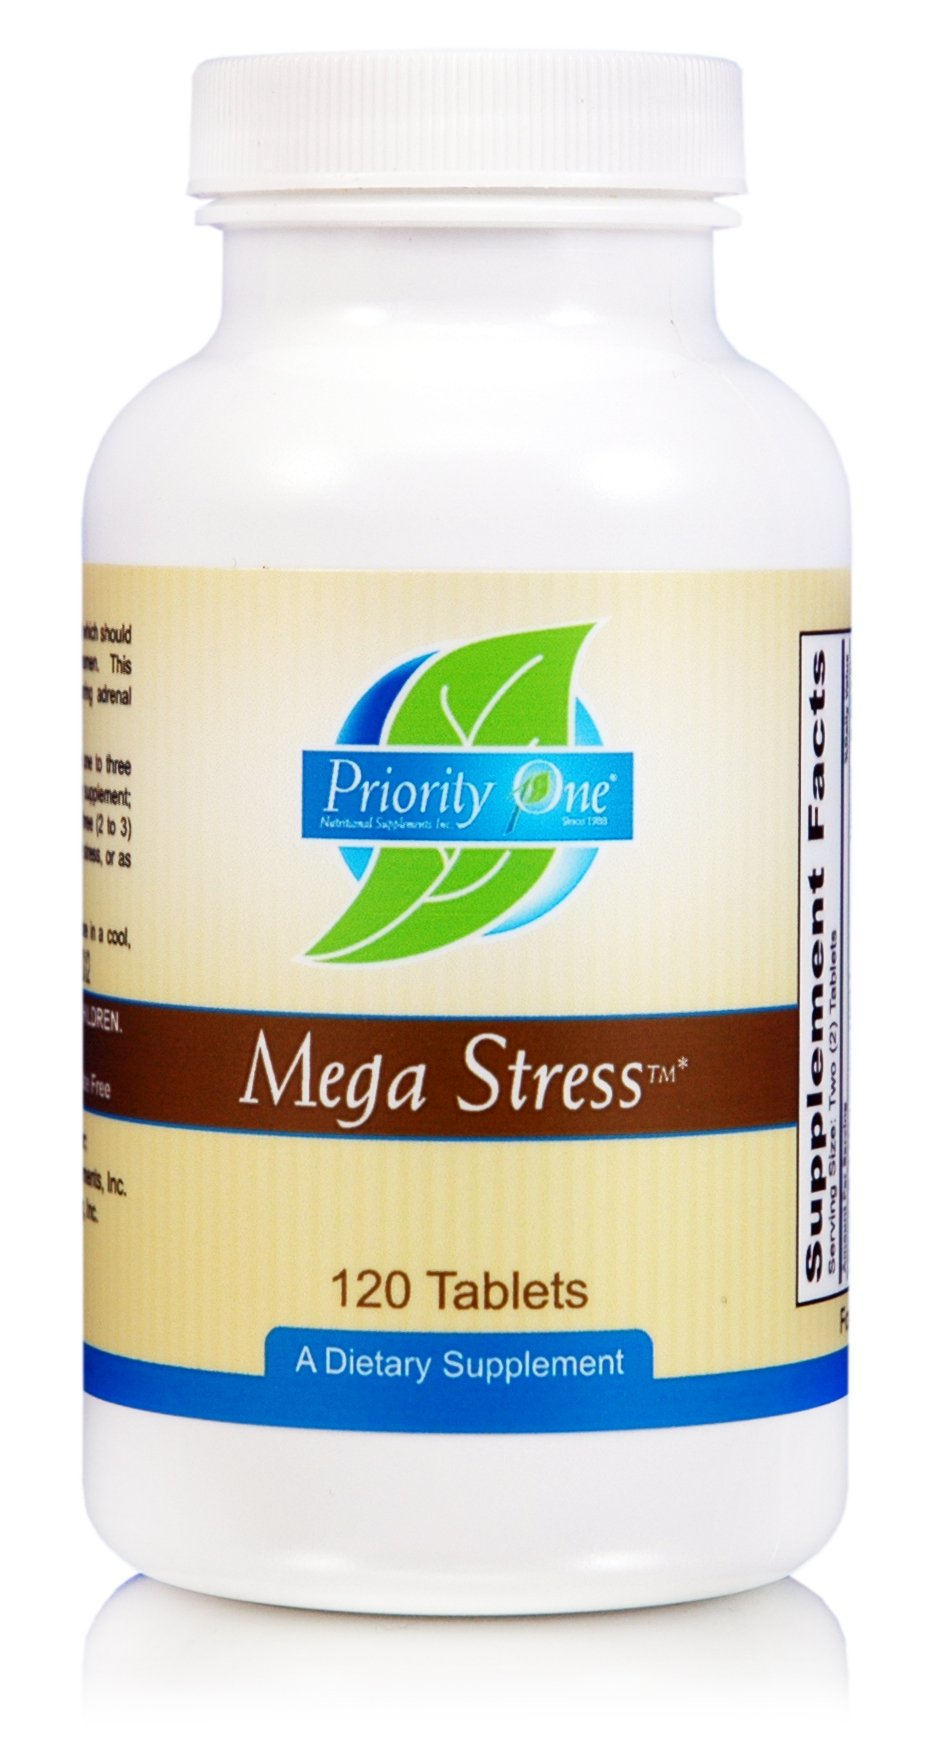 Priority One Vitamins Mega Stress 120 Tablets - High Potency B Vitamin Complex with The Benefits of Adrenal - Healthy Energy Production.*